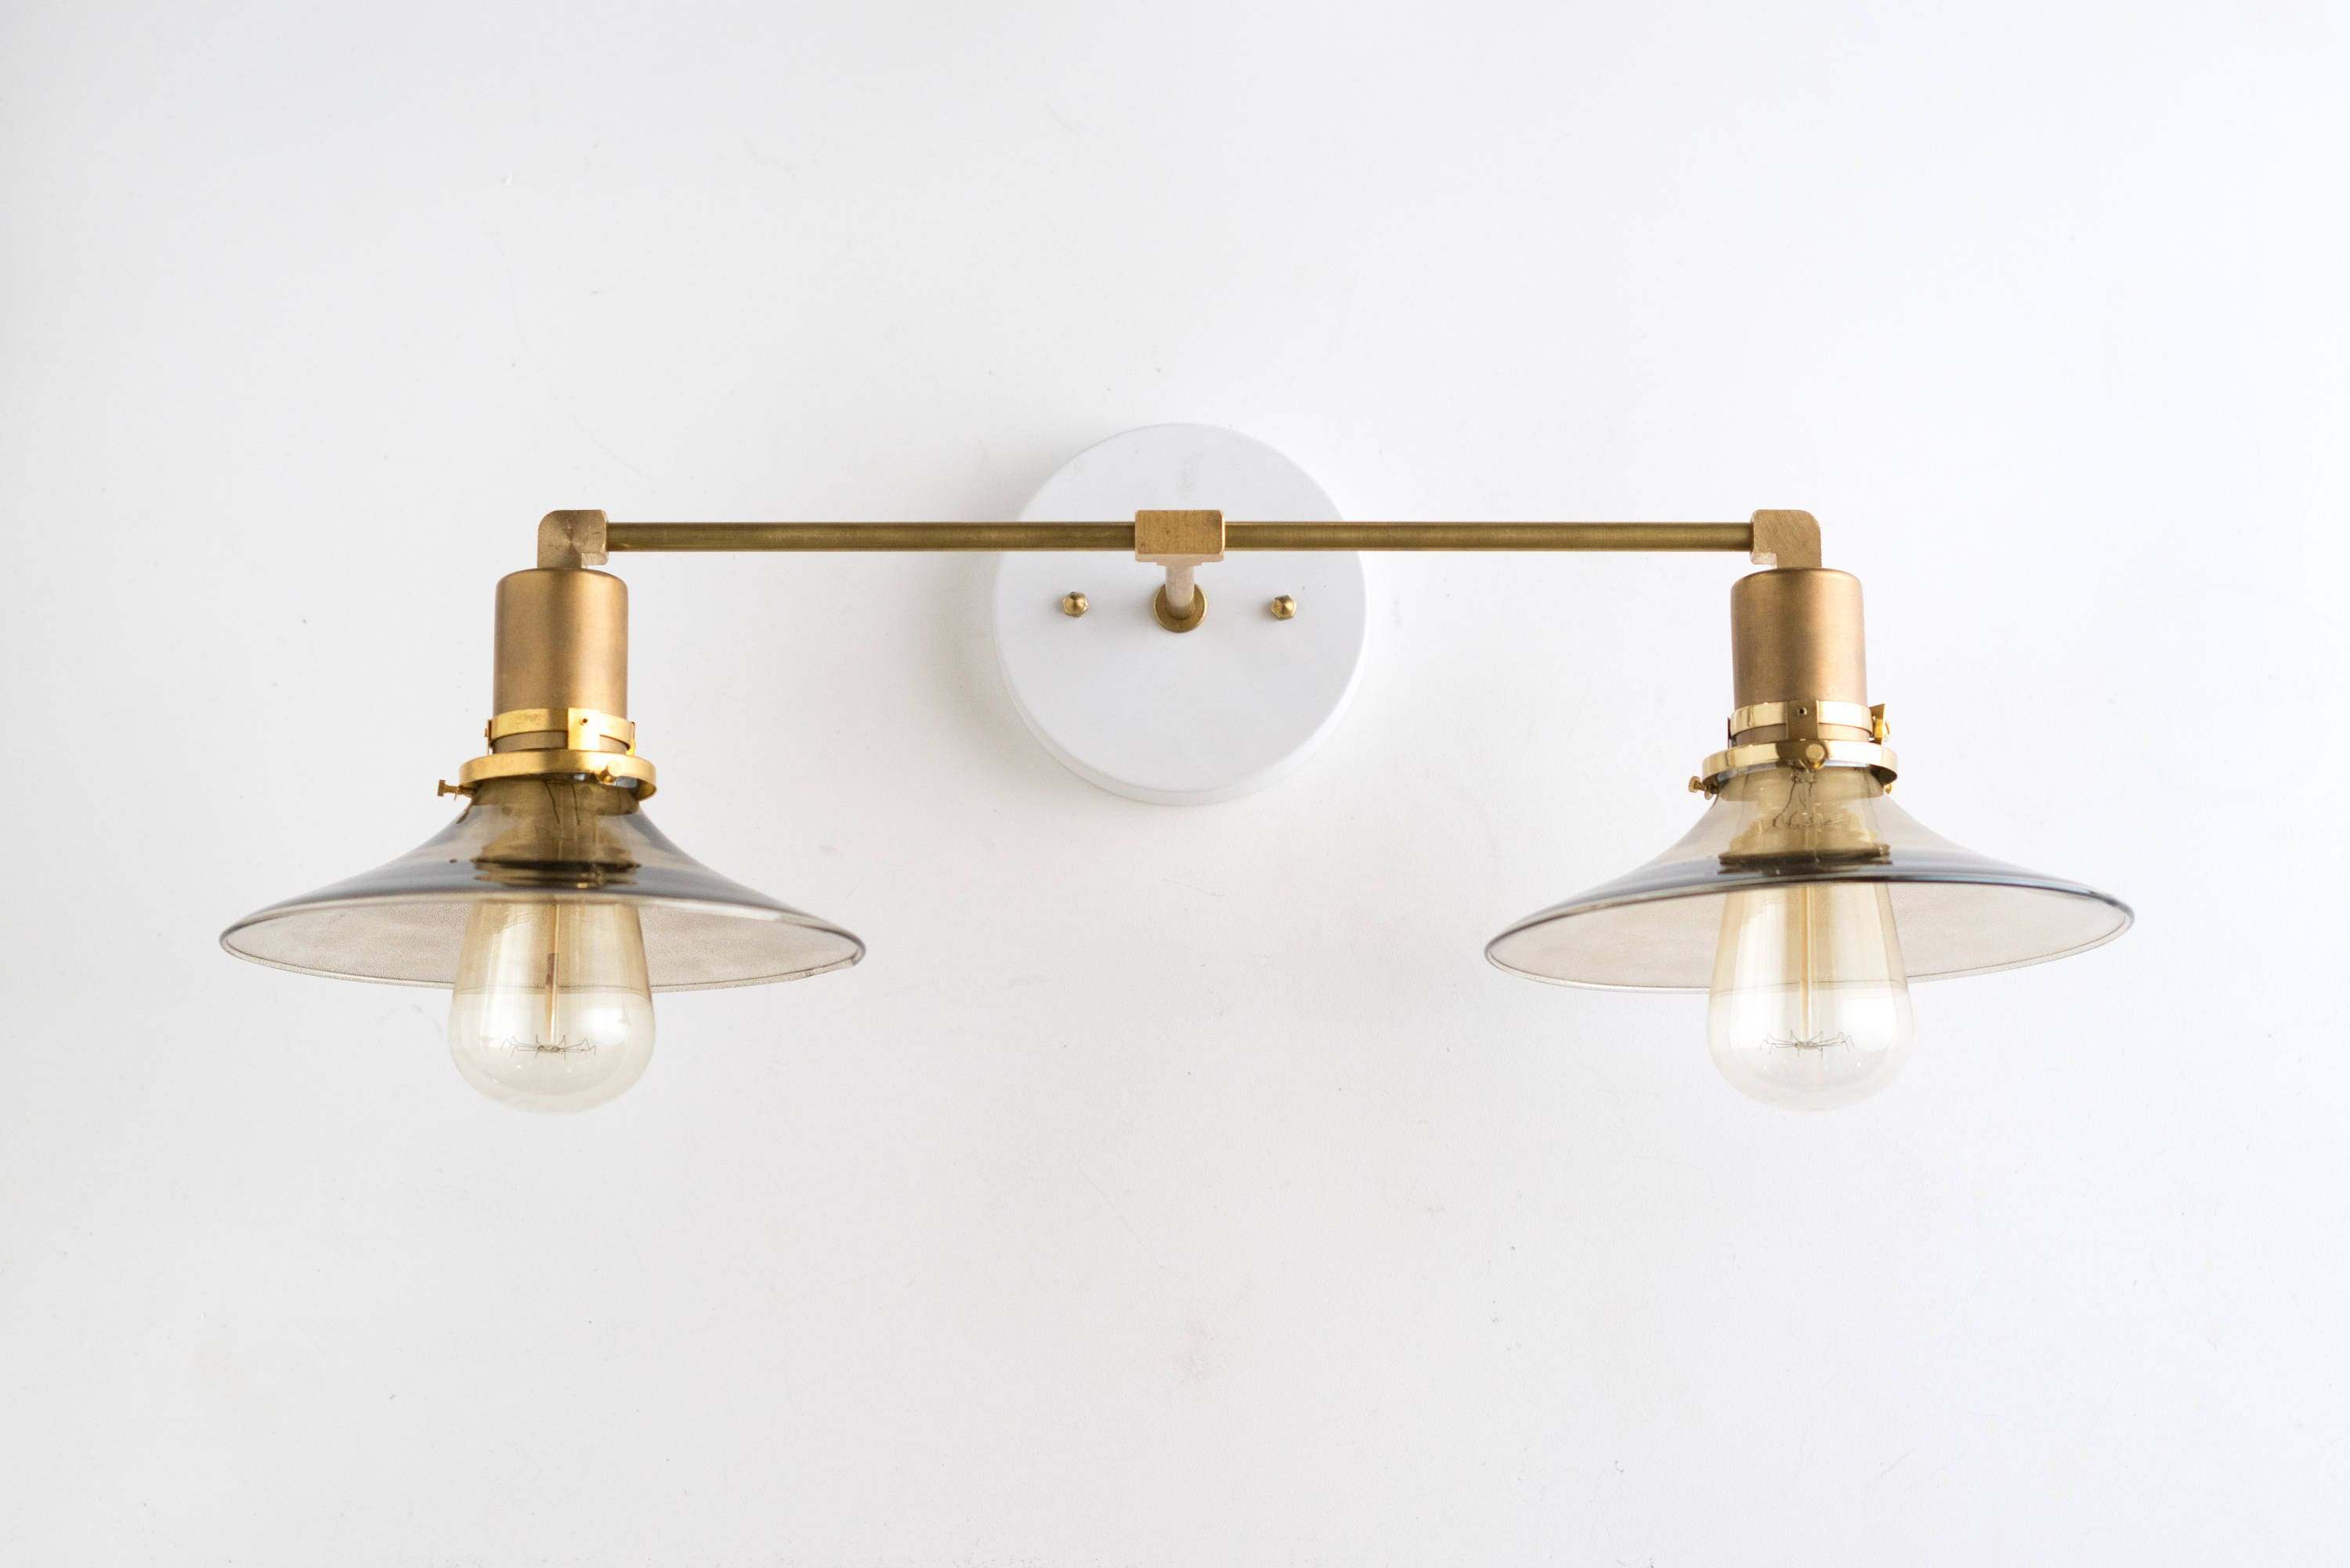 Modern Vanity Light Bathroom Lighting Wall Fixture